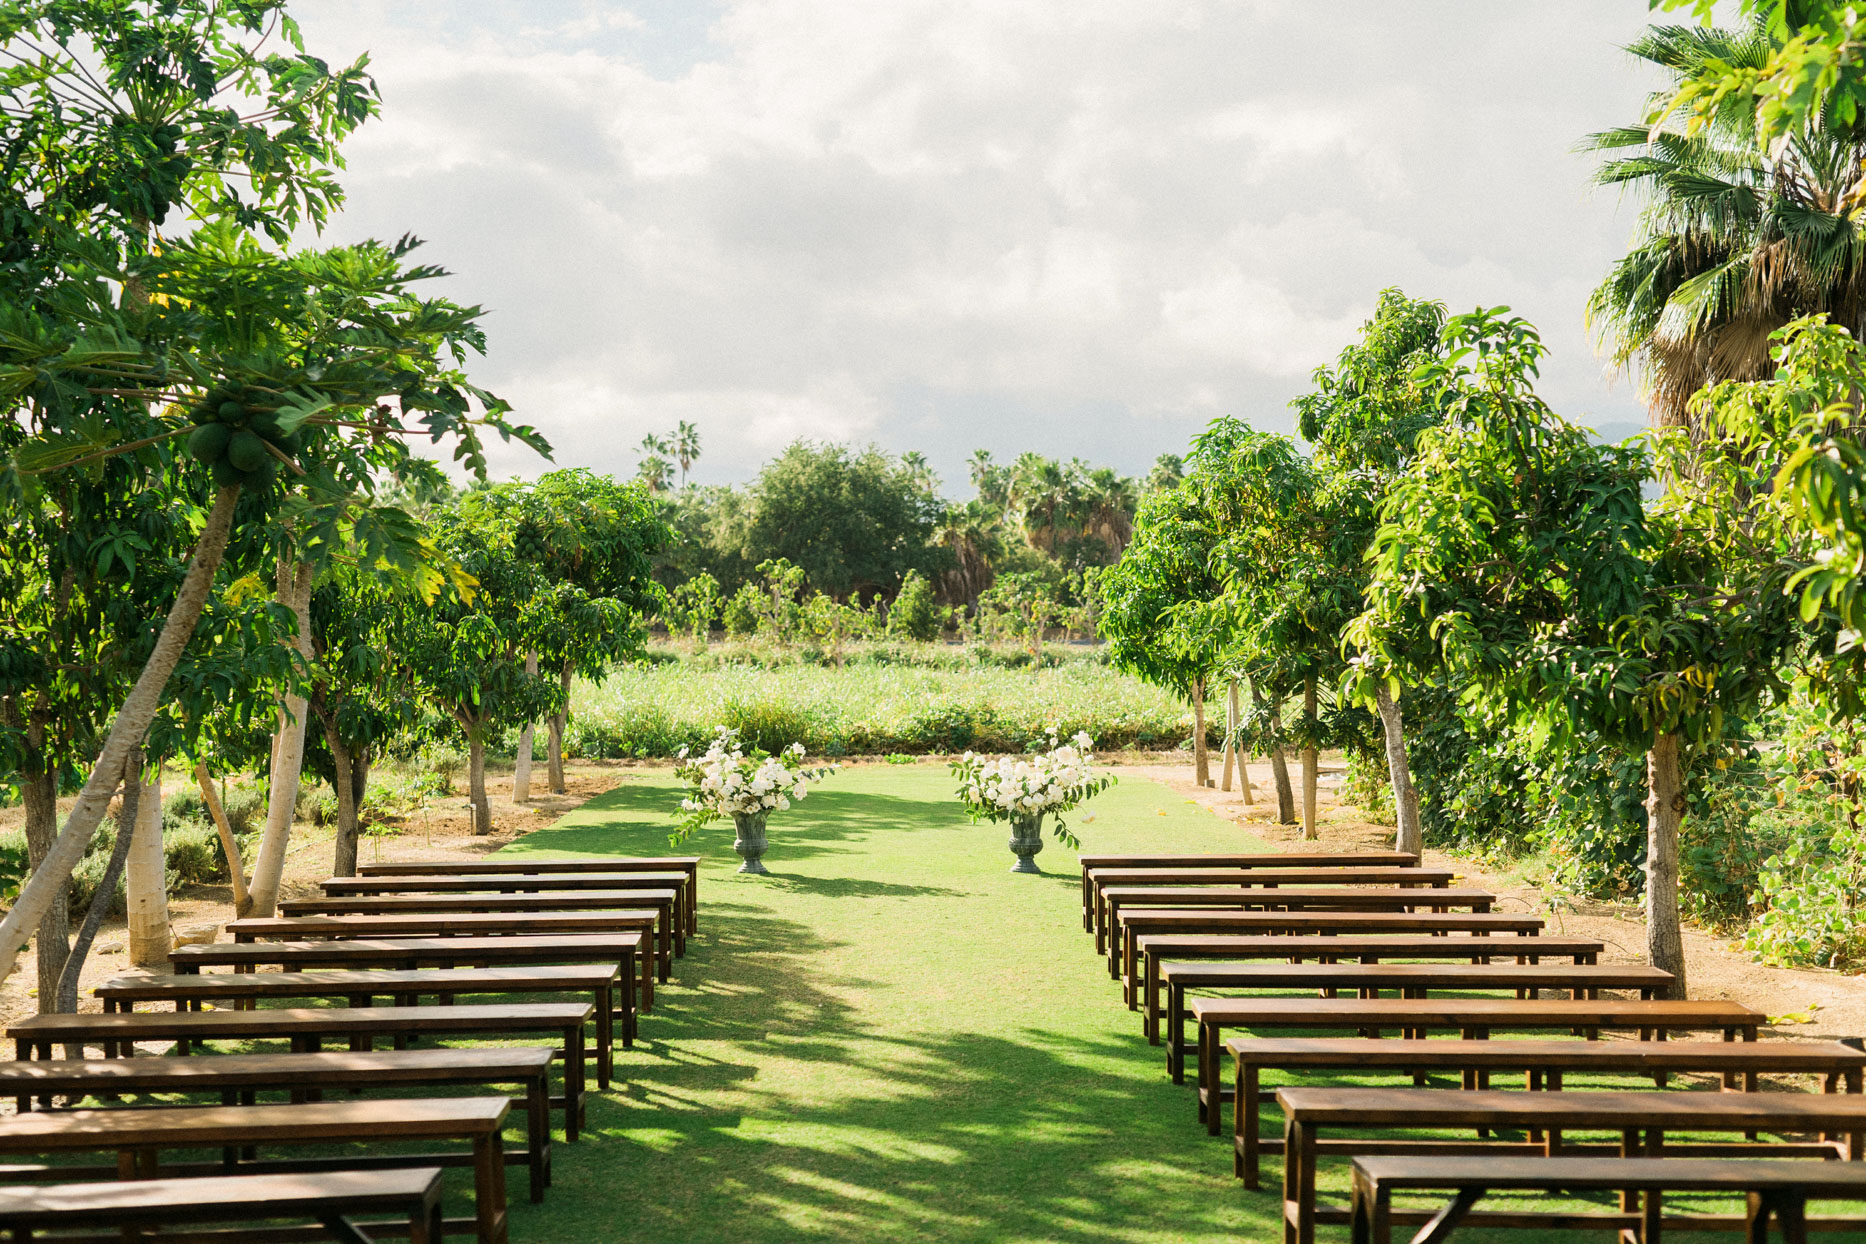 outdoor wedding ceremony in garden with wooden benches for guests